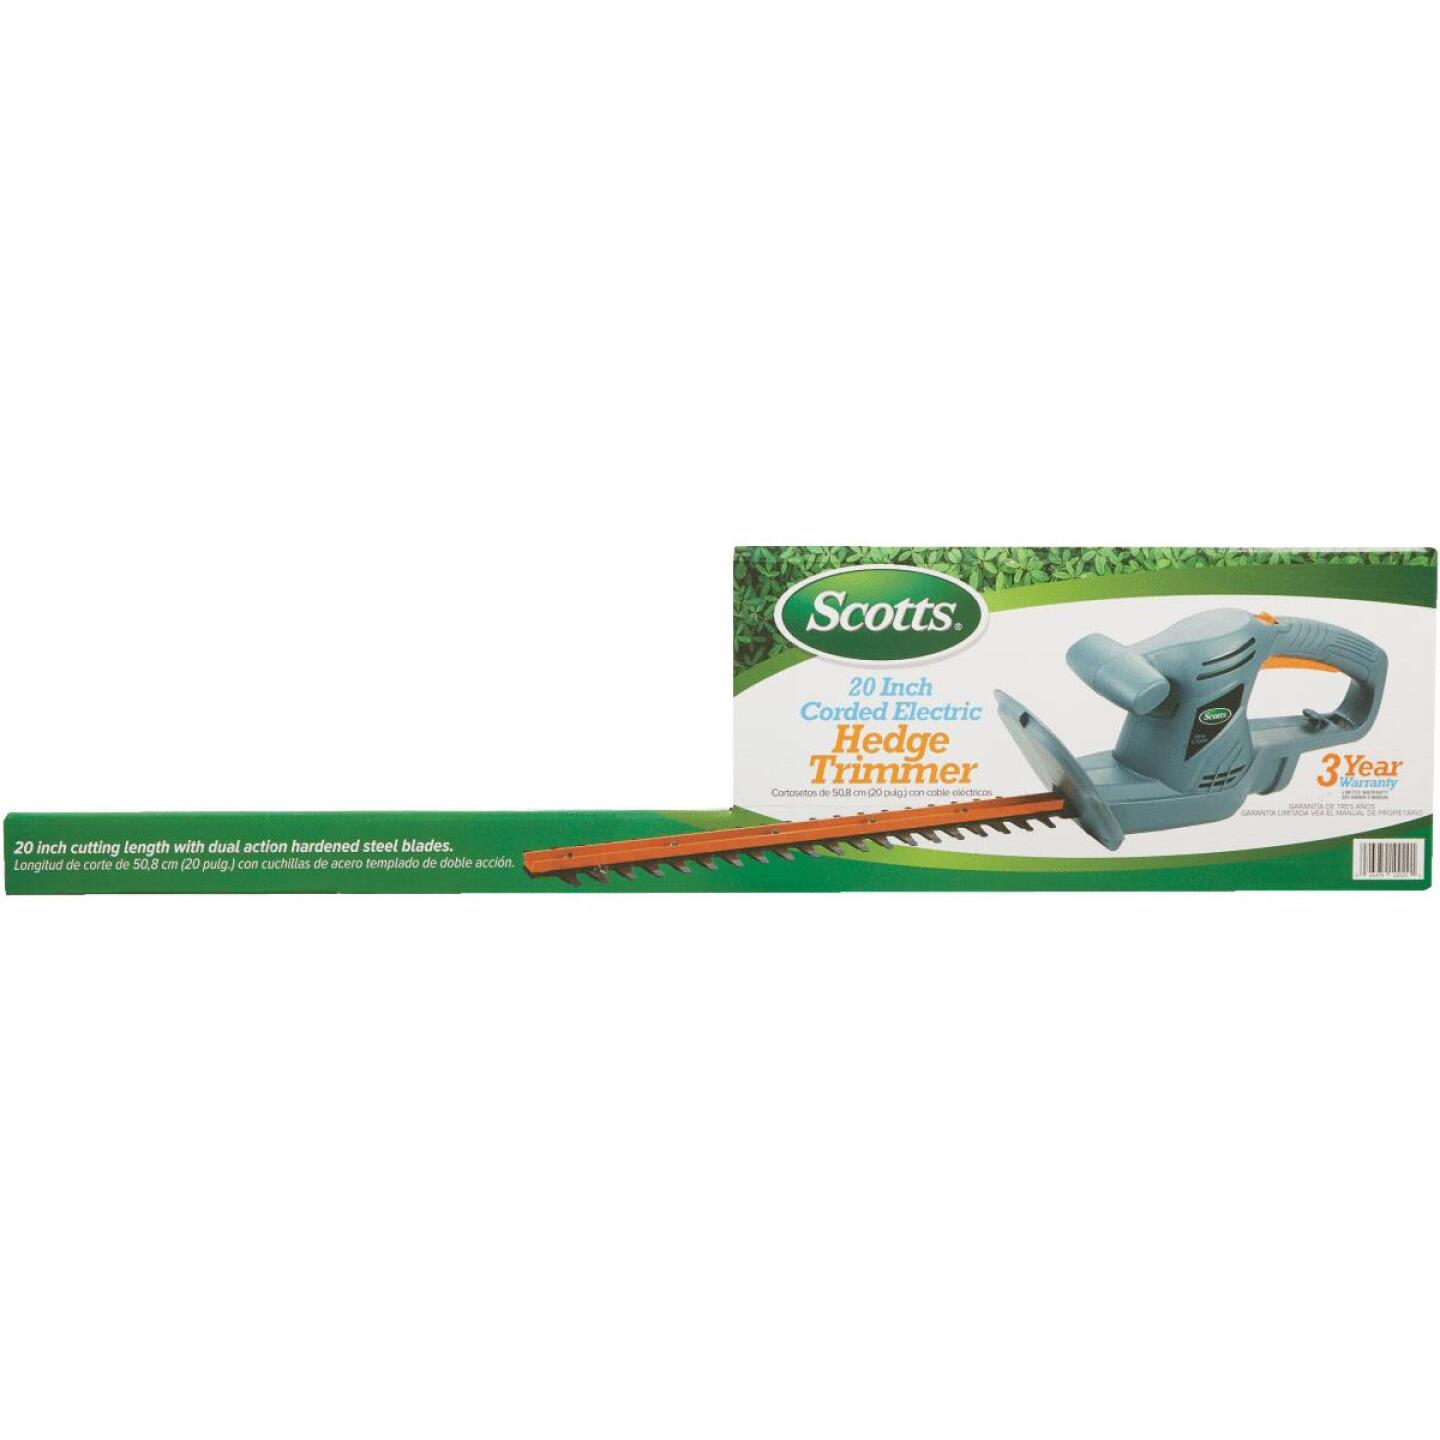 Scotts 20 In. Corded Electric Hedge Trimmer Image 2